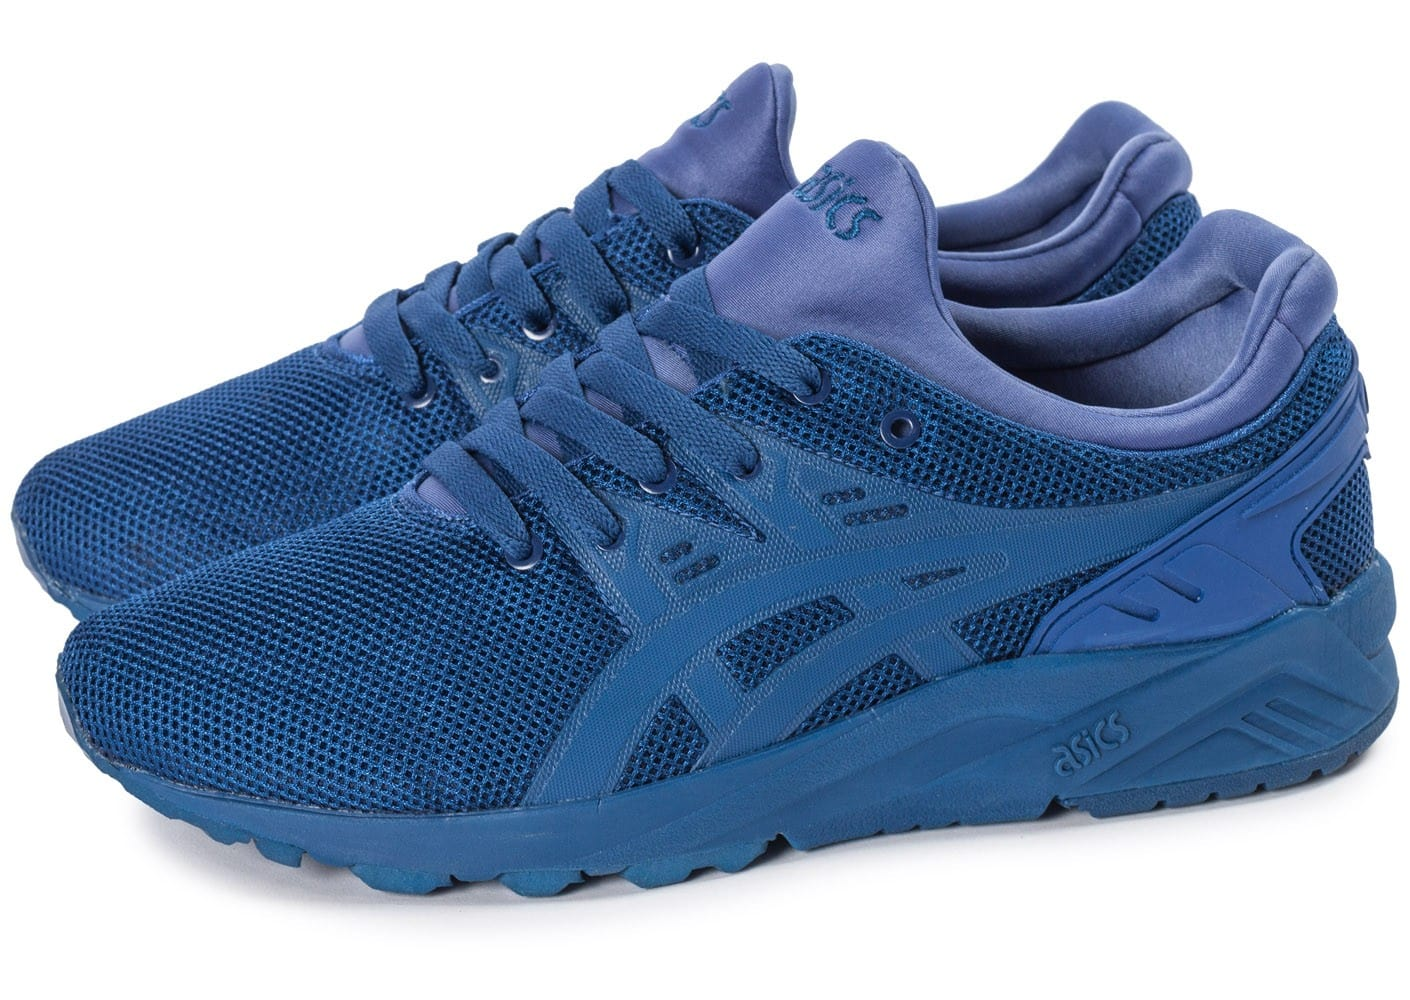 Chaussures Asics Gel bleues homme